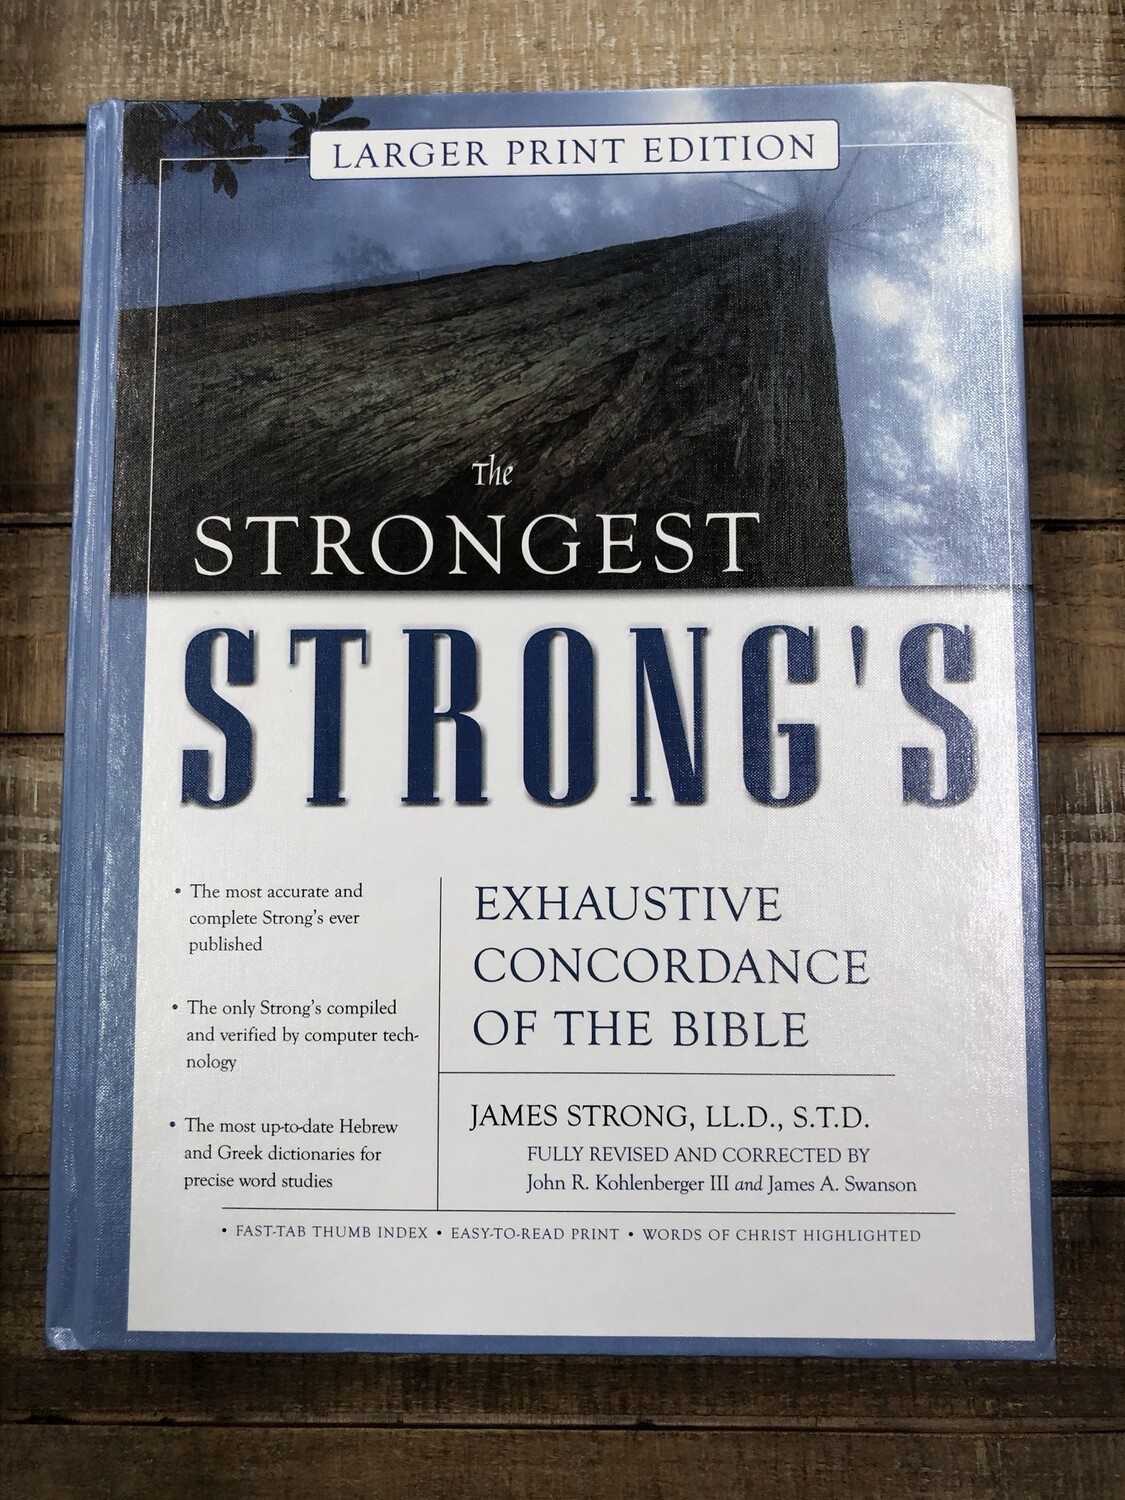 The Strongest Strong's Concordance